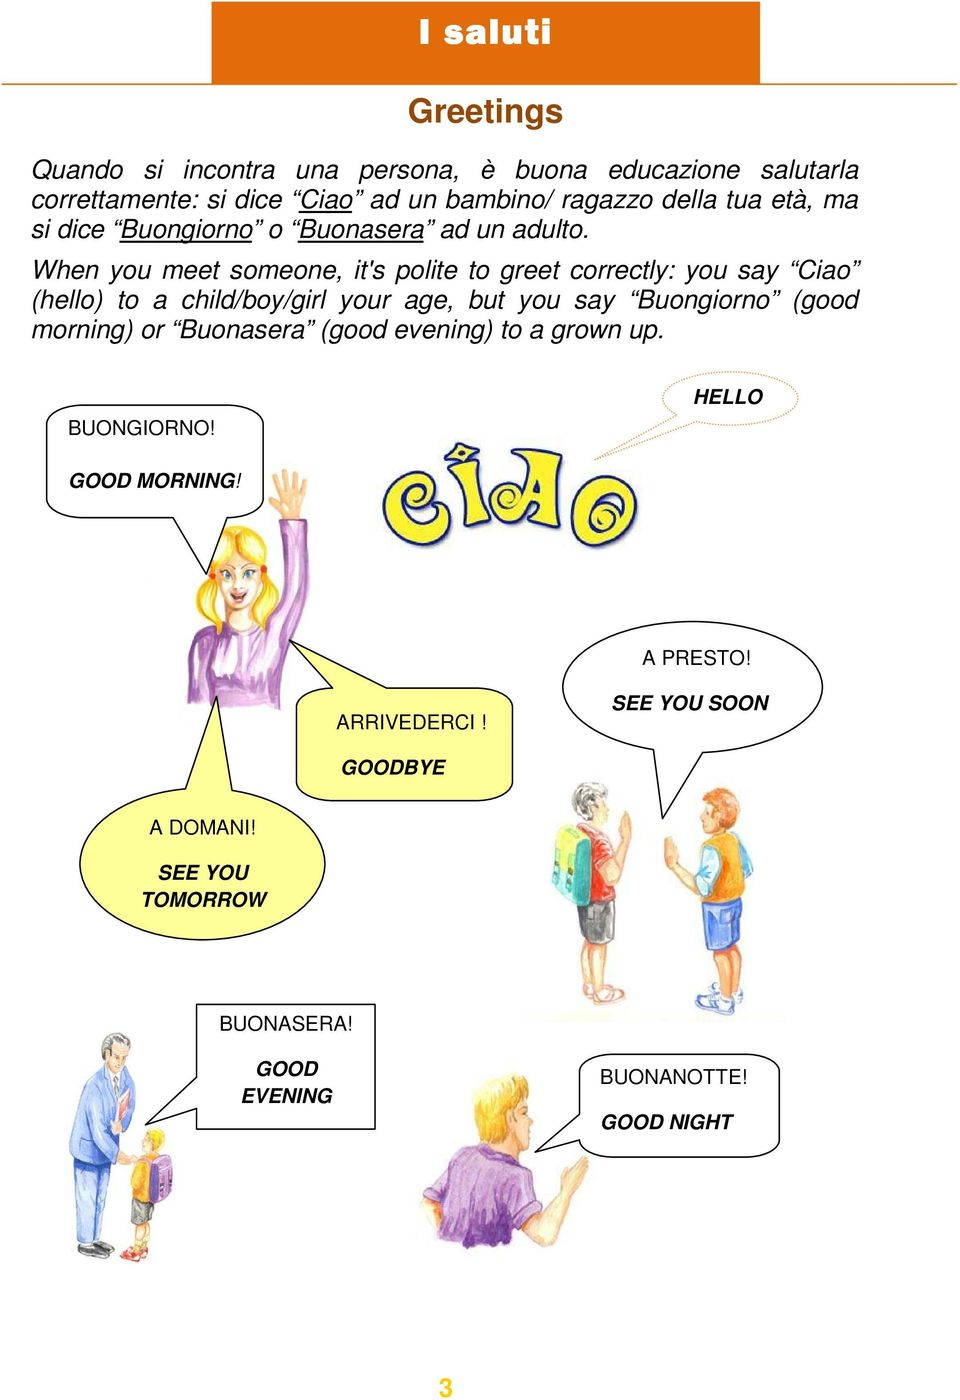 When you meet someone, it's polite to greet correctly: you say Ciao (hello) to a child/boy/girl your age, but you say Buongiorno